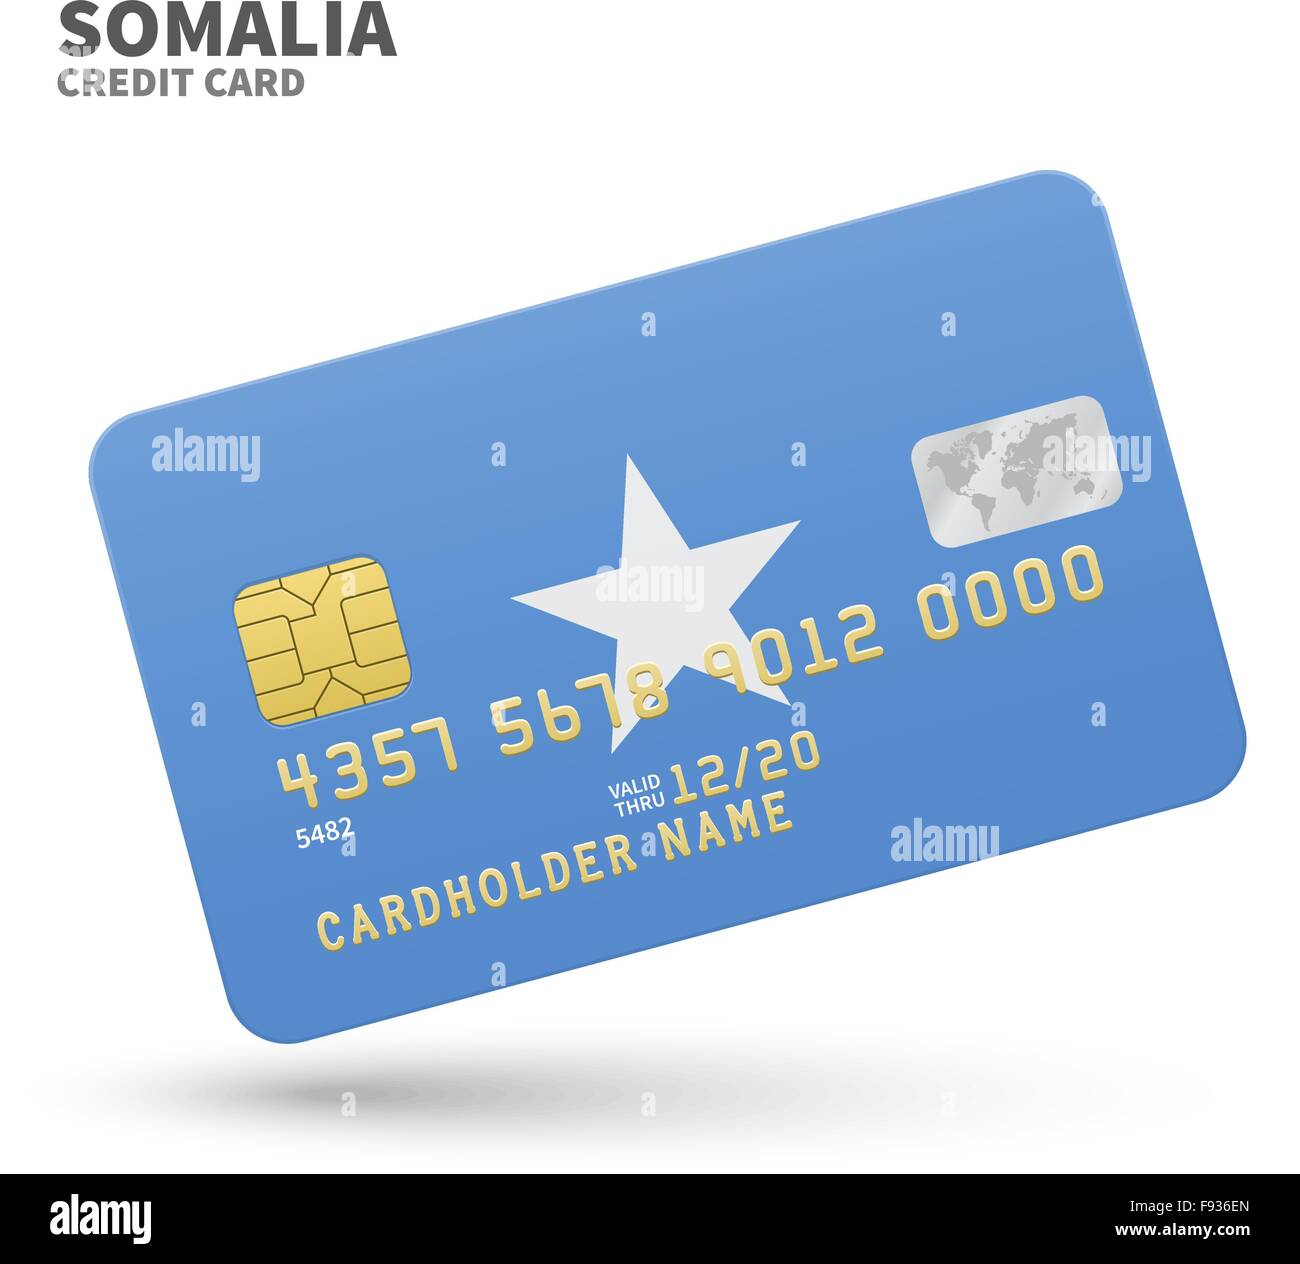 Credit card with Somalia flag background for bank, presentations and ...